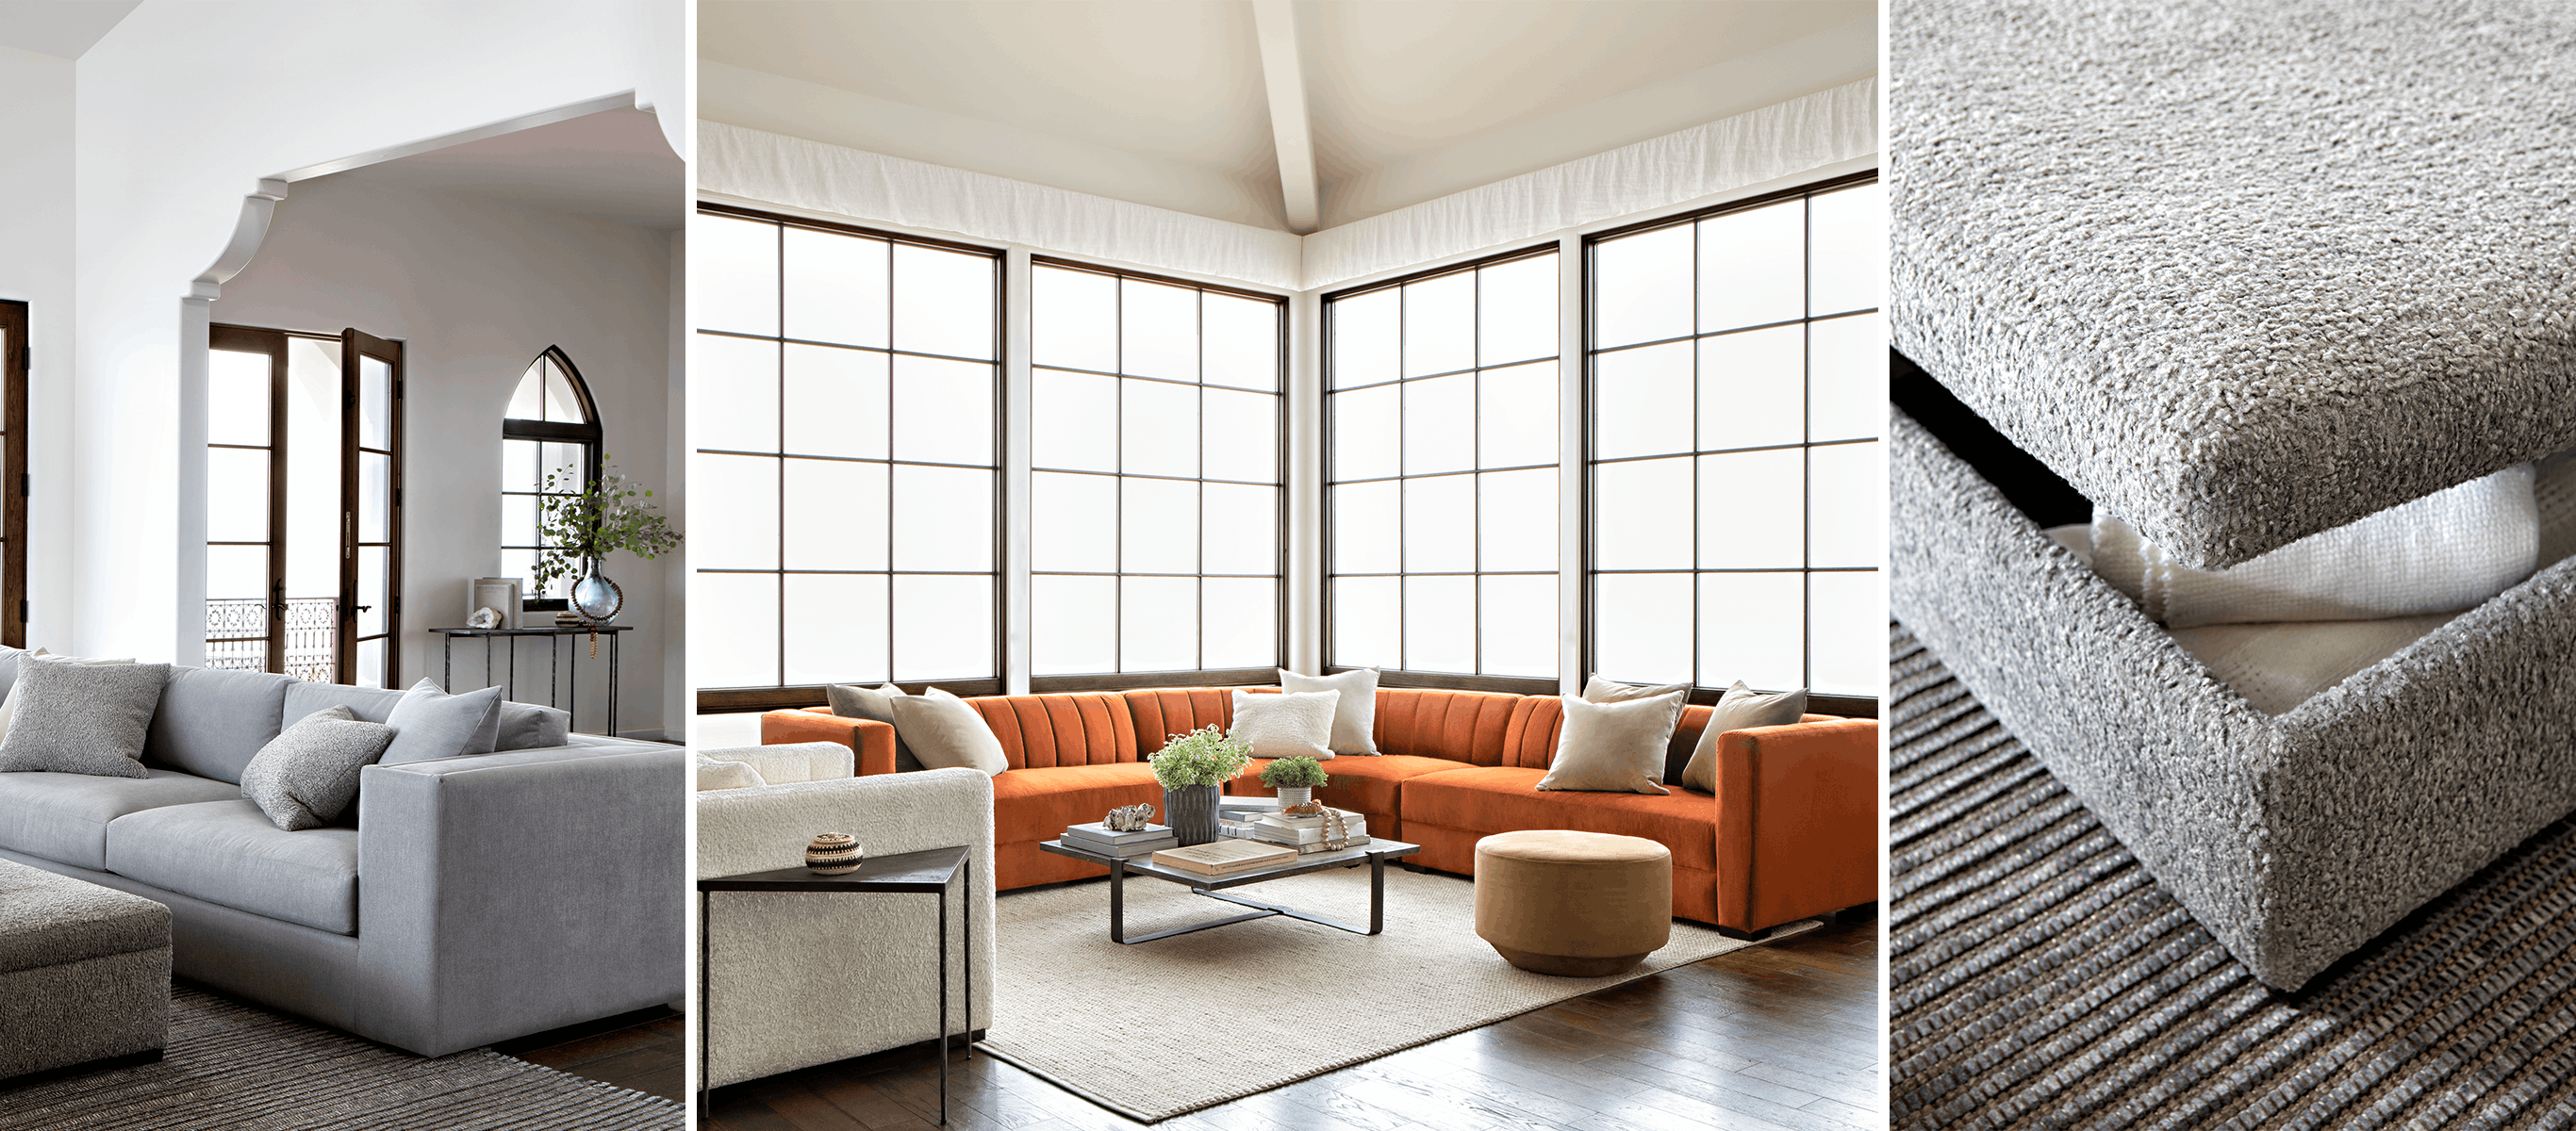 Whitley 3 Piece Sectionals By Nate Berkus And Jeremiah Brent Inside Preferred Nate Berkus Just Launched A Home Collection With Hubby Jeremiah (View 19 of 20)